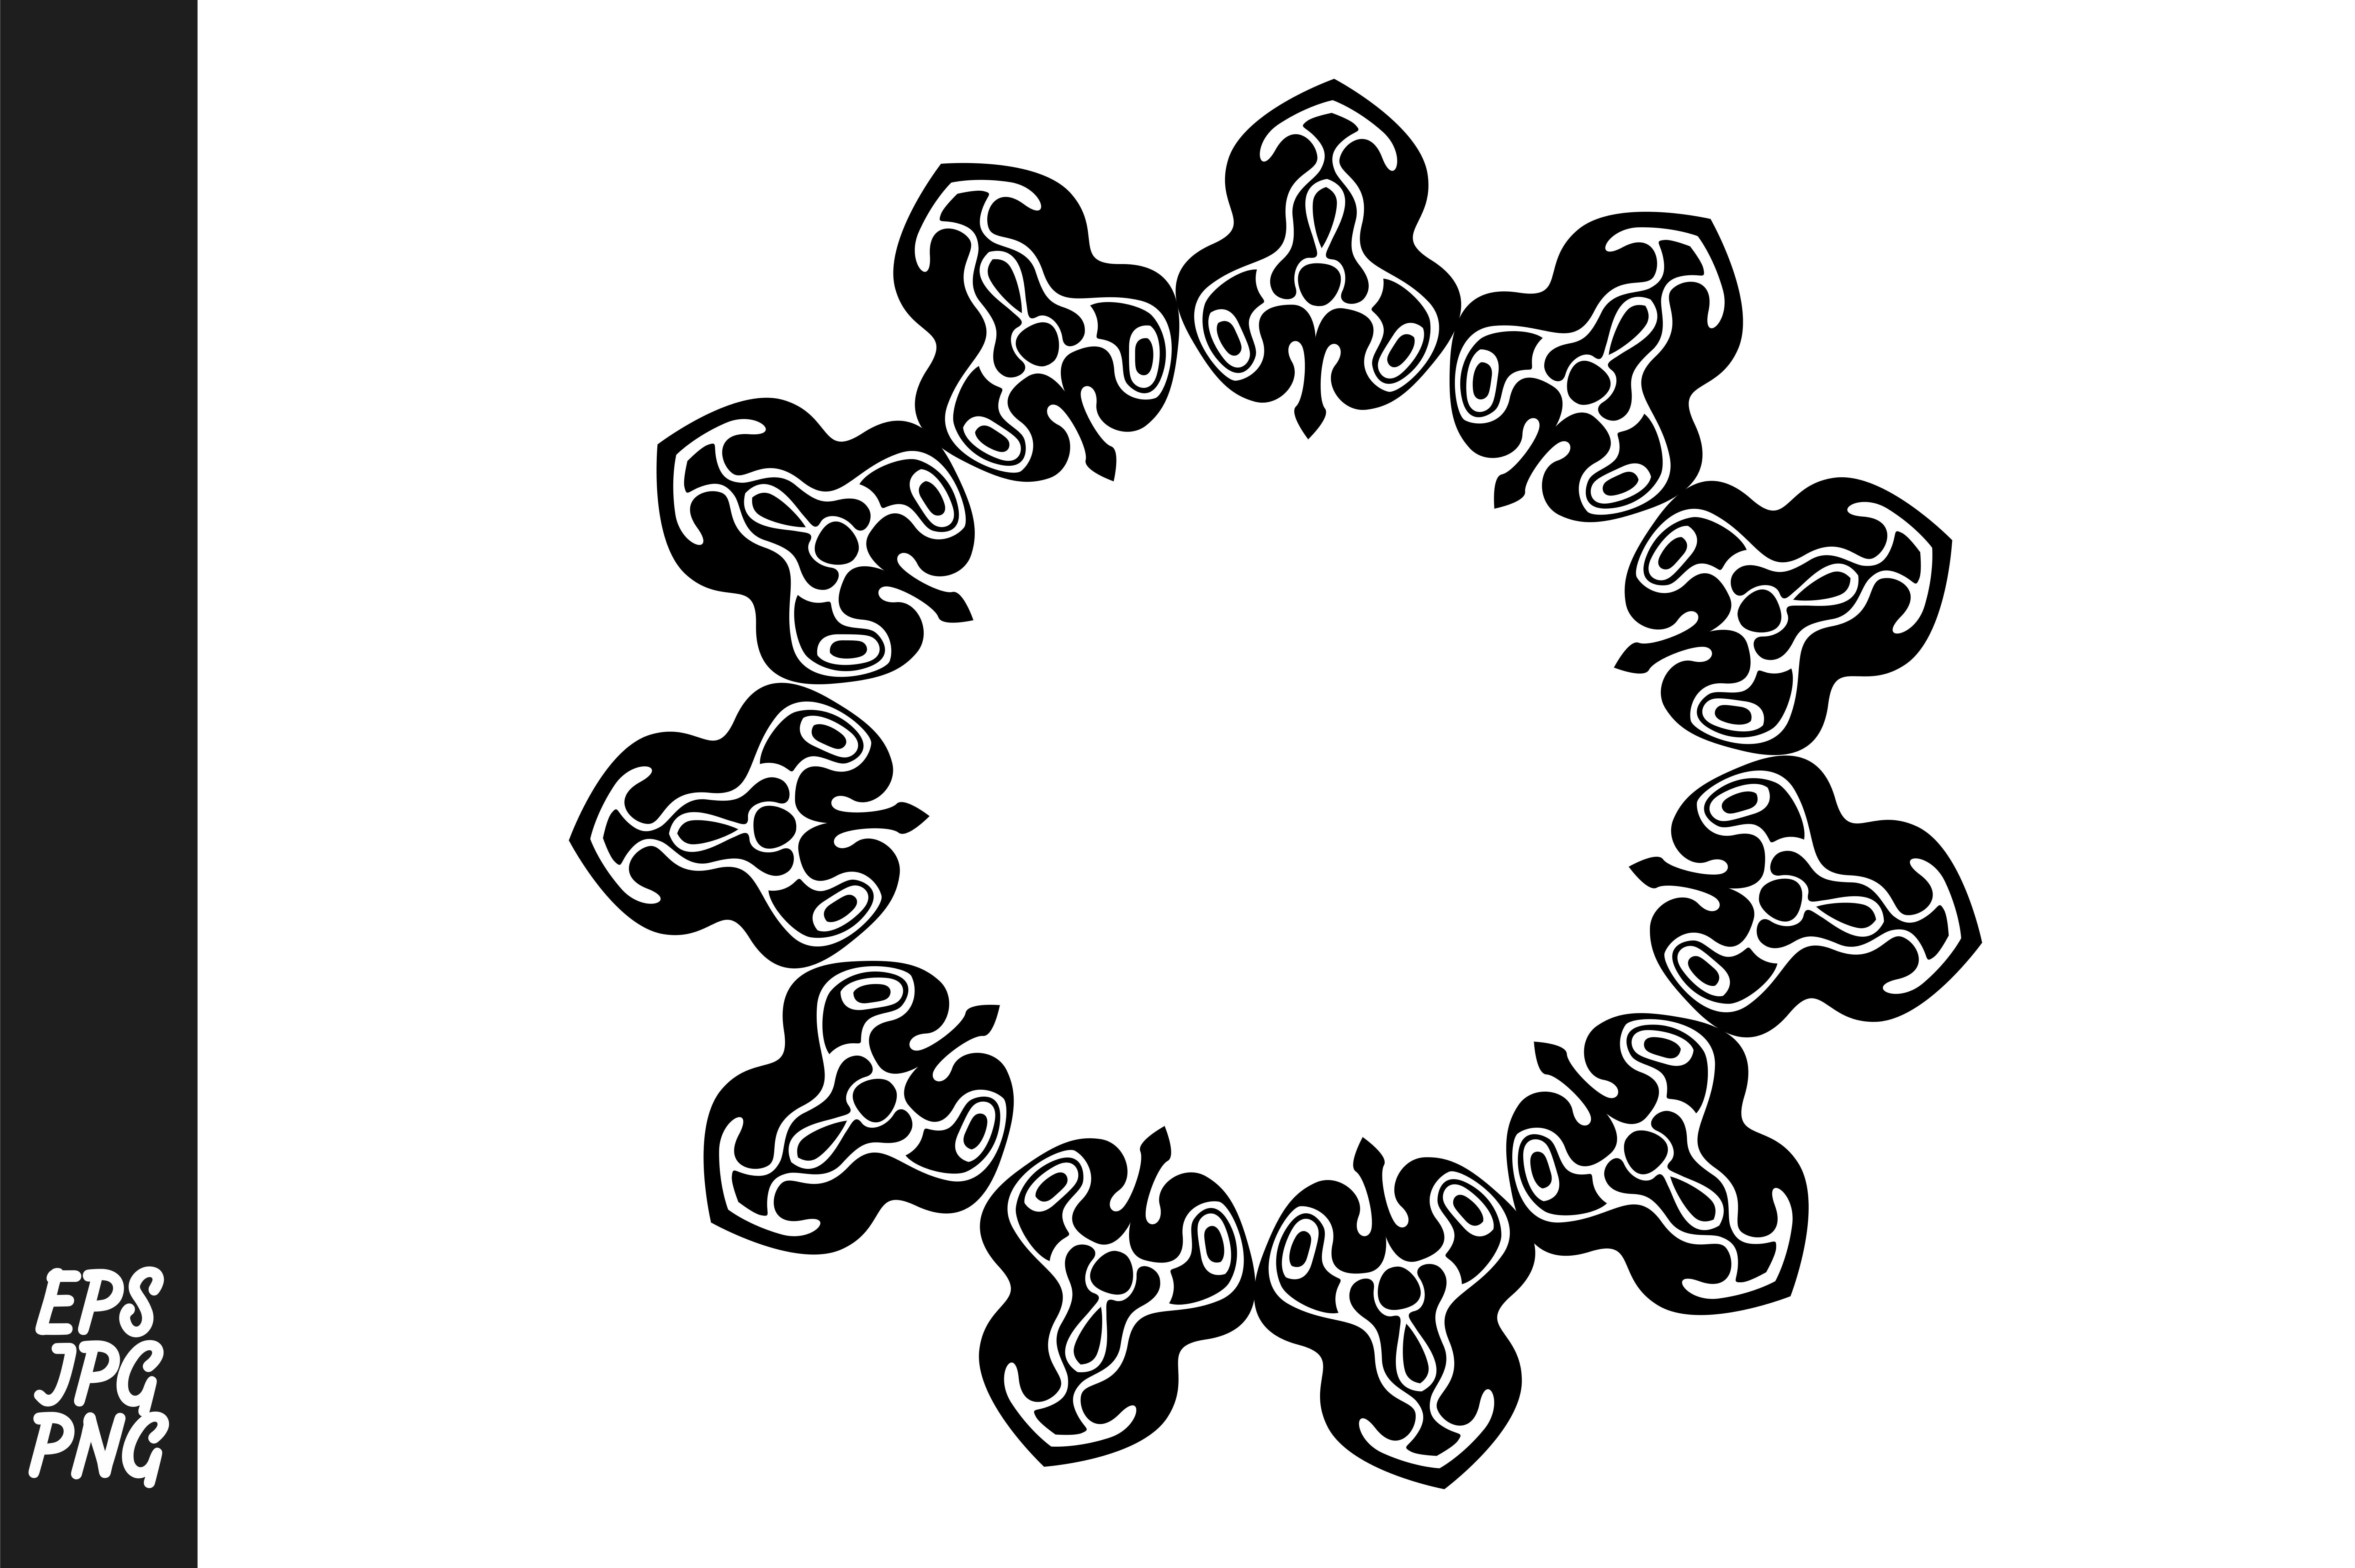 Download Free Monogram Flower Ornament Decoration Graphic By Arsa Adjie for Cricut Explore, Silhouette and other cutting machines.